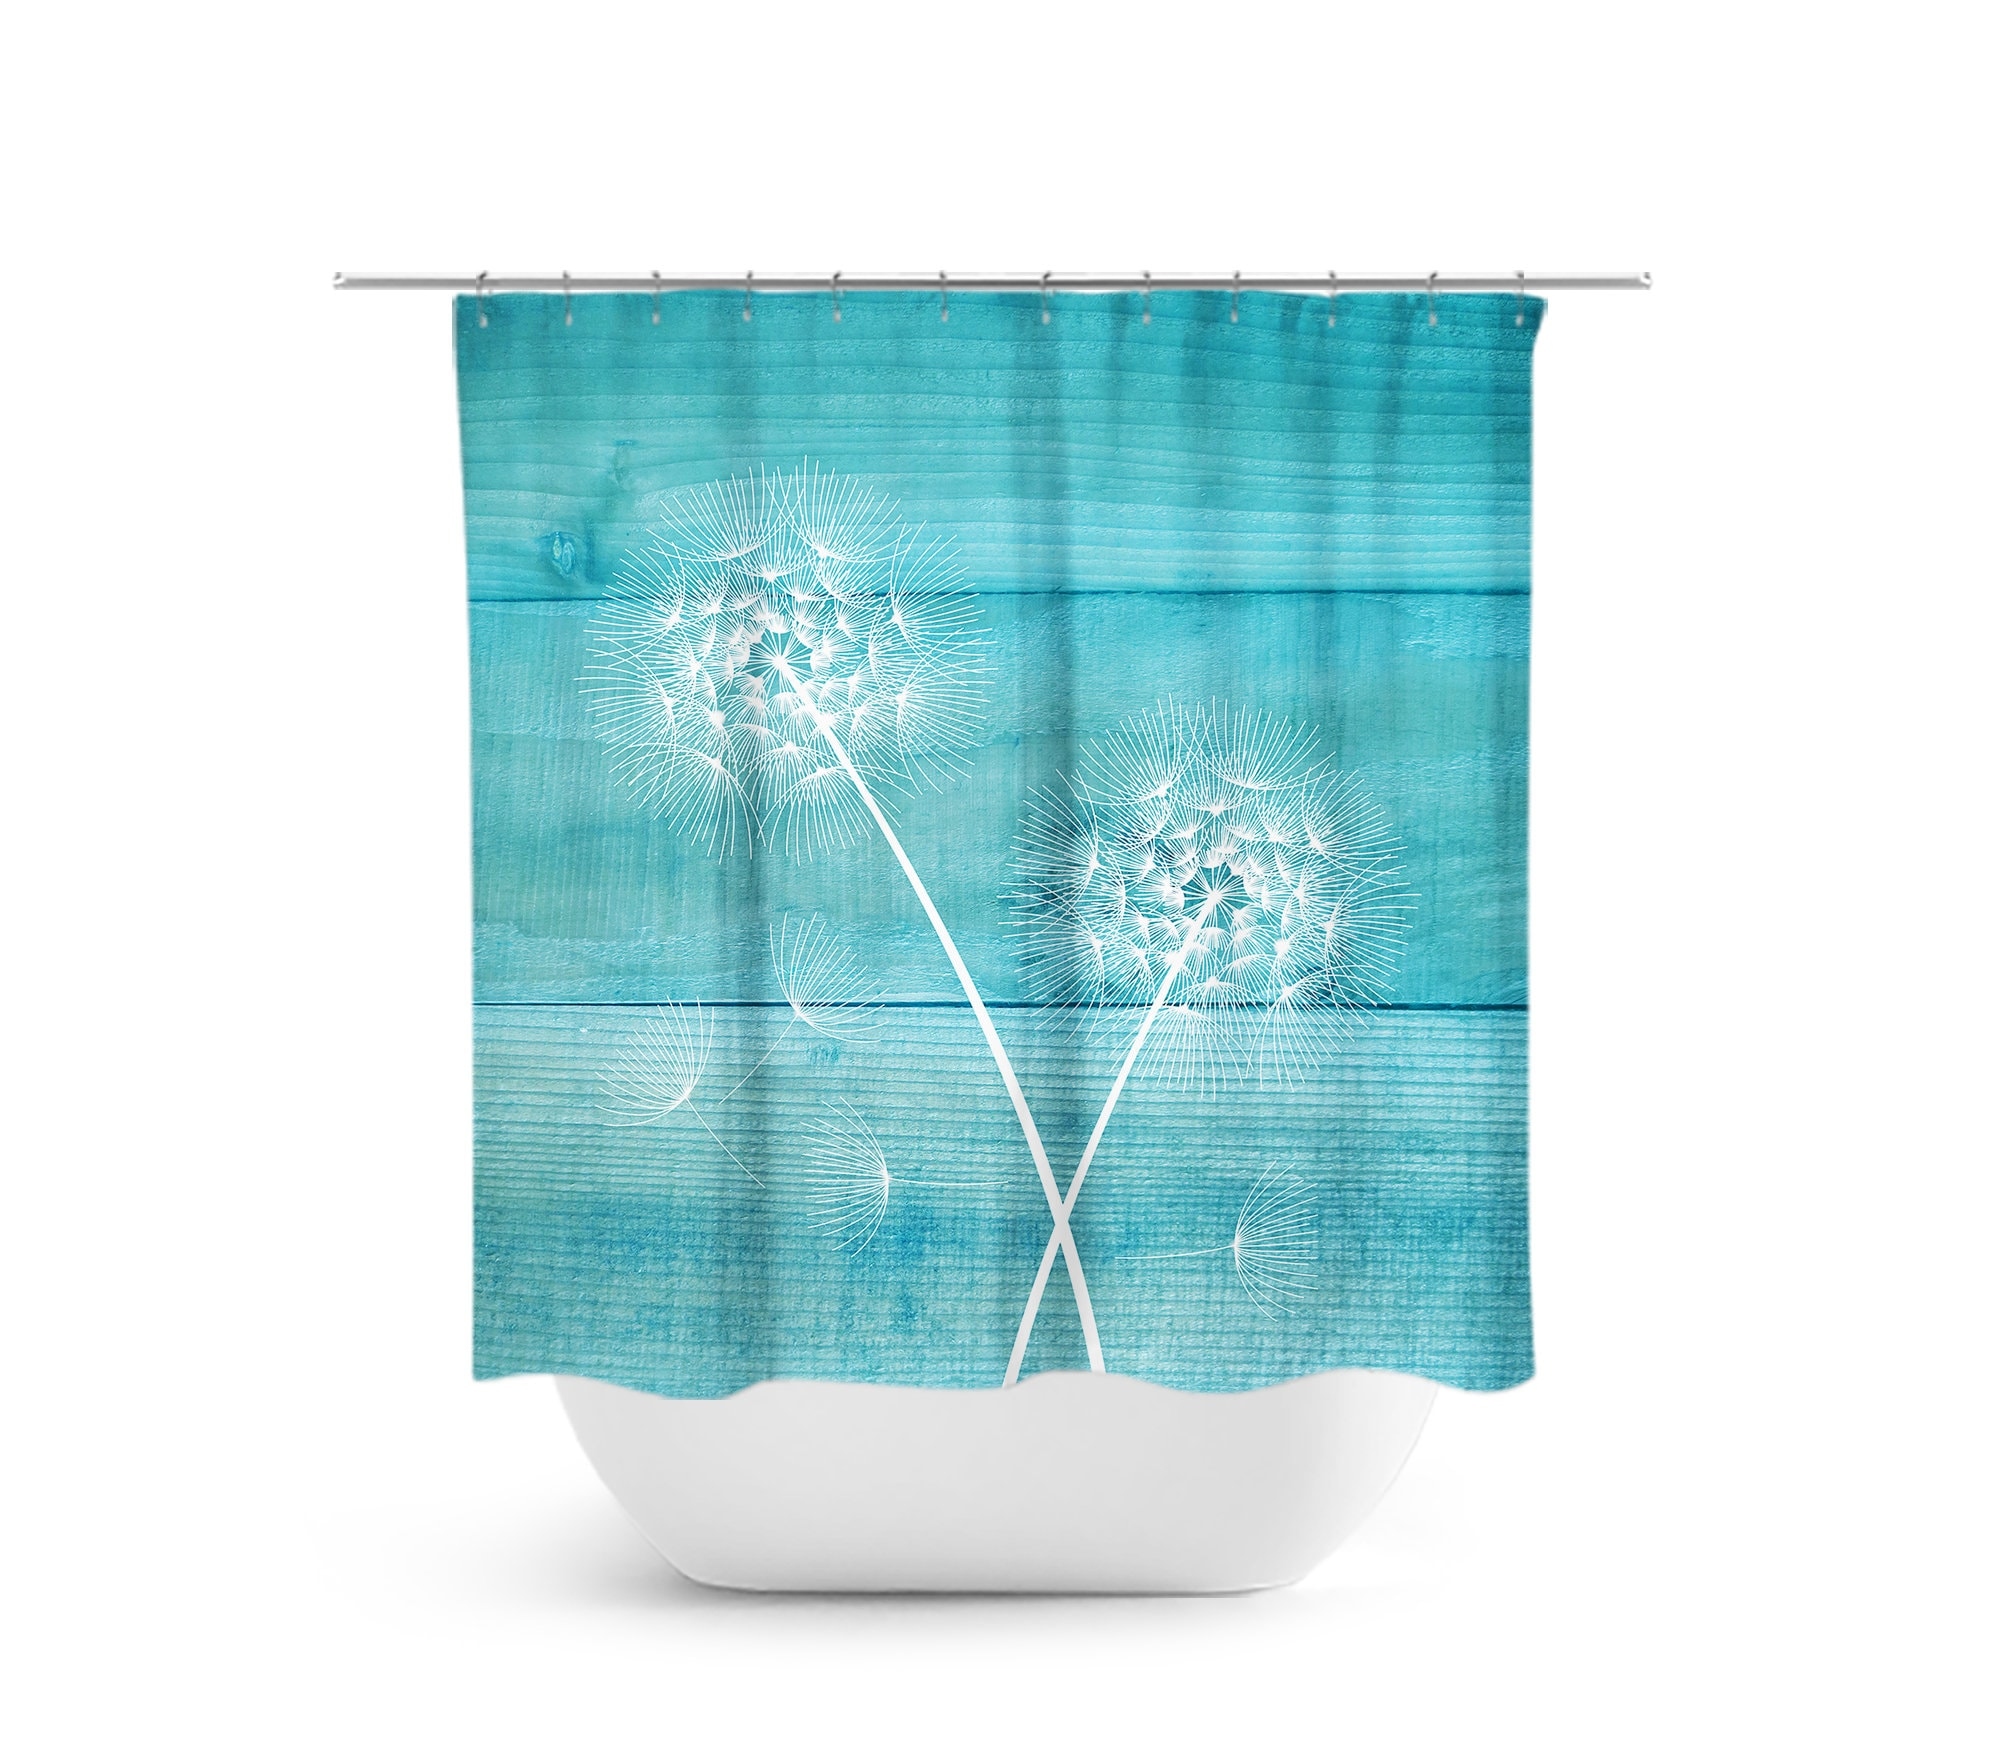 Dandelion Shower Curtain Rustic Bathroom Decor Bath Farmhouse Teal Aqua